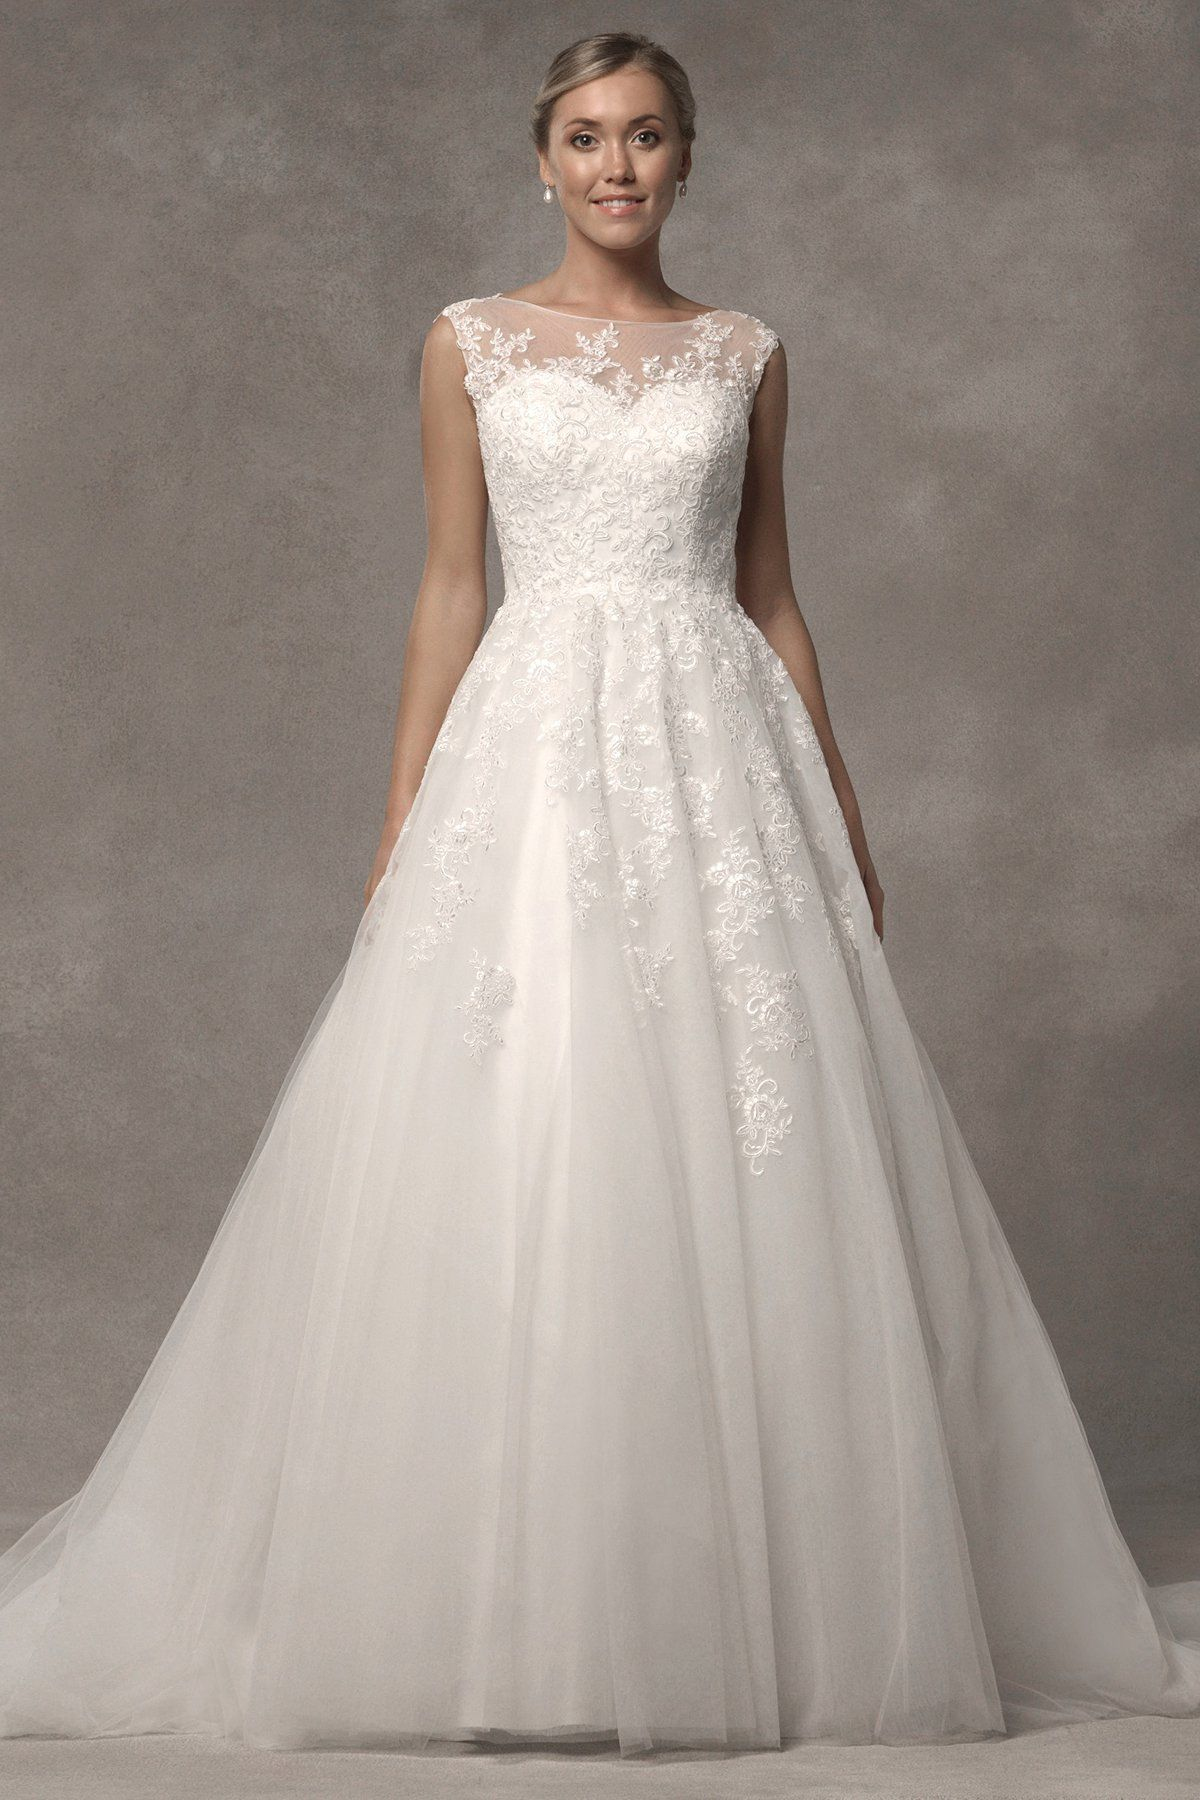 Style 1600284 By LQ Designs